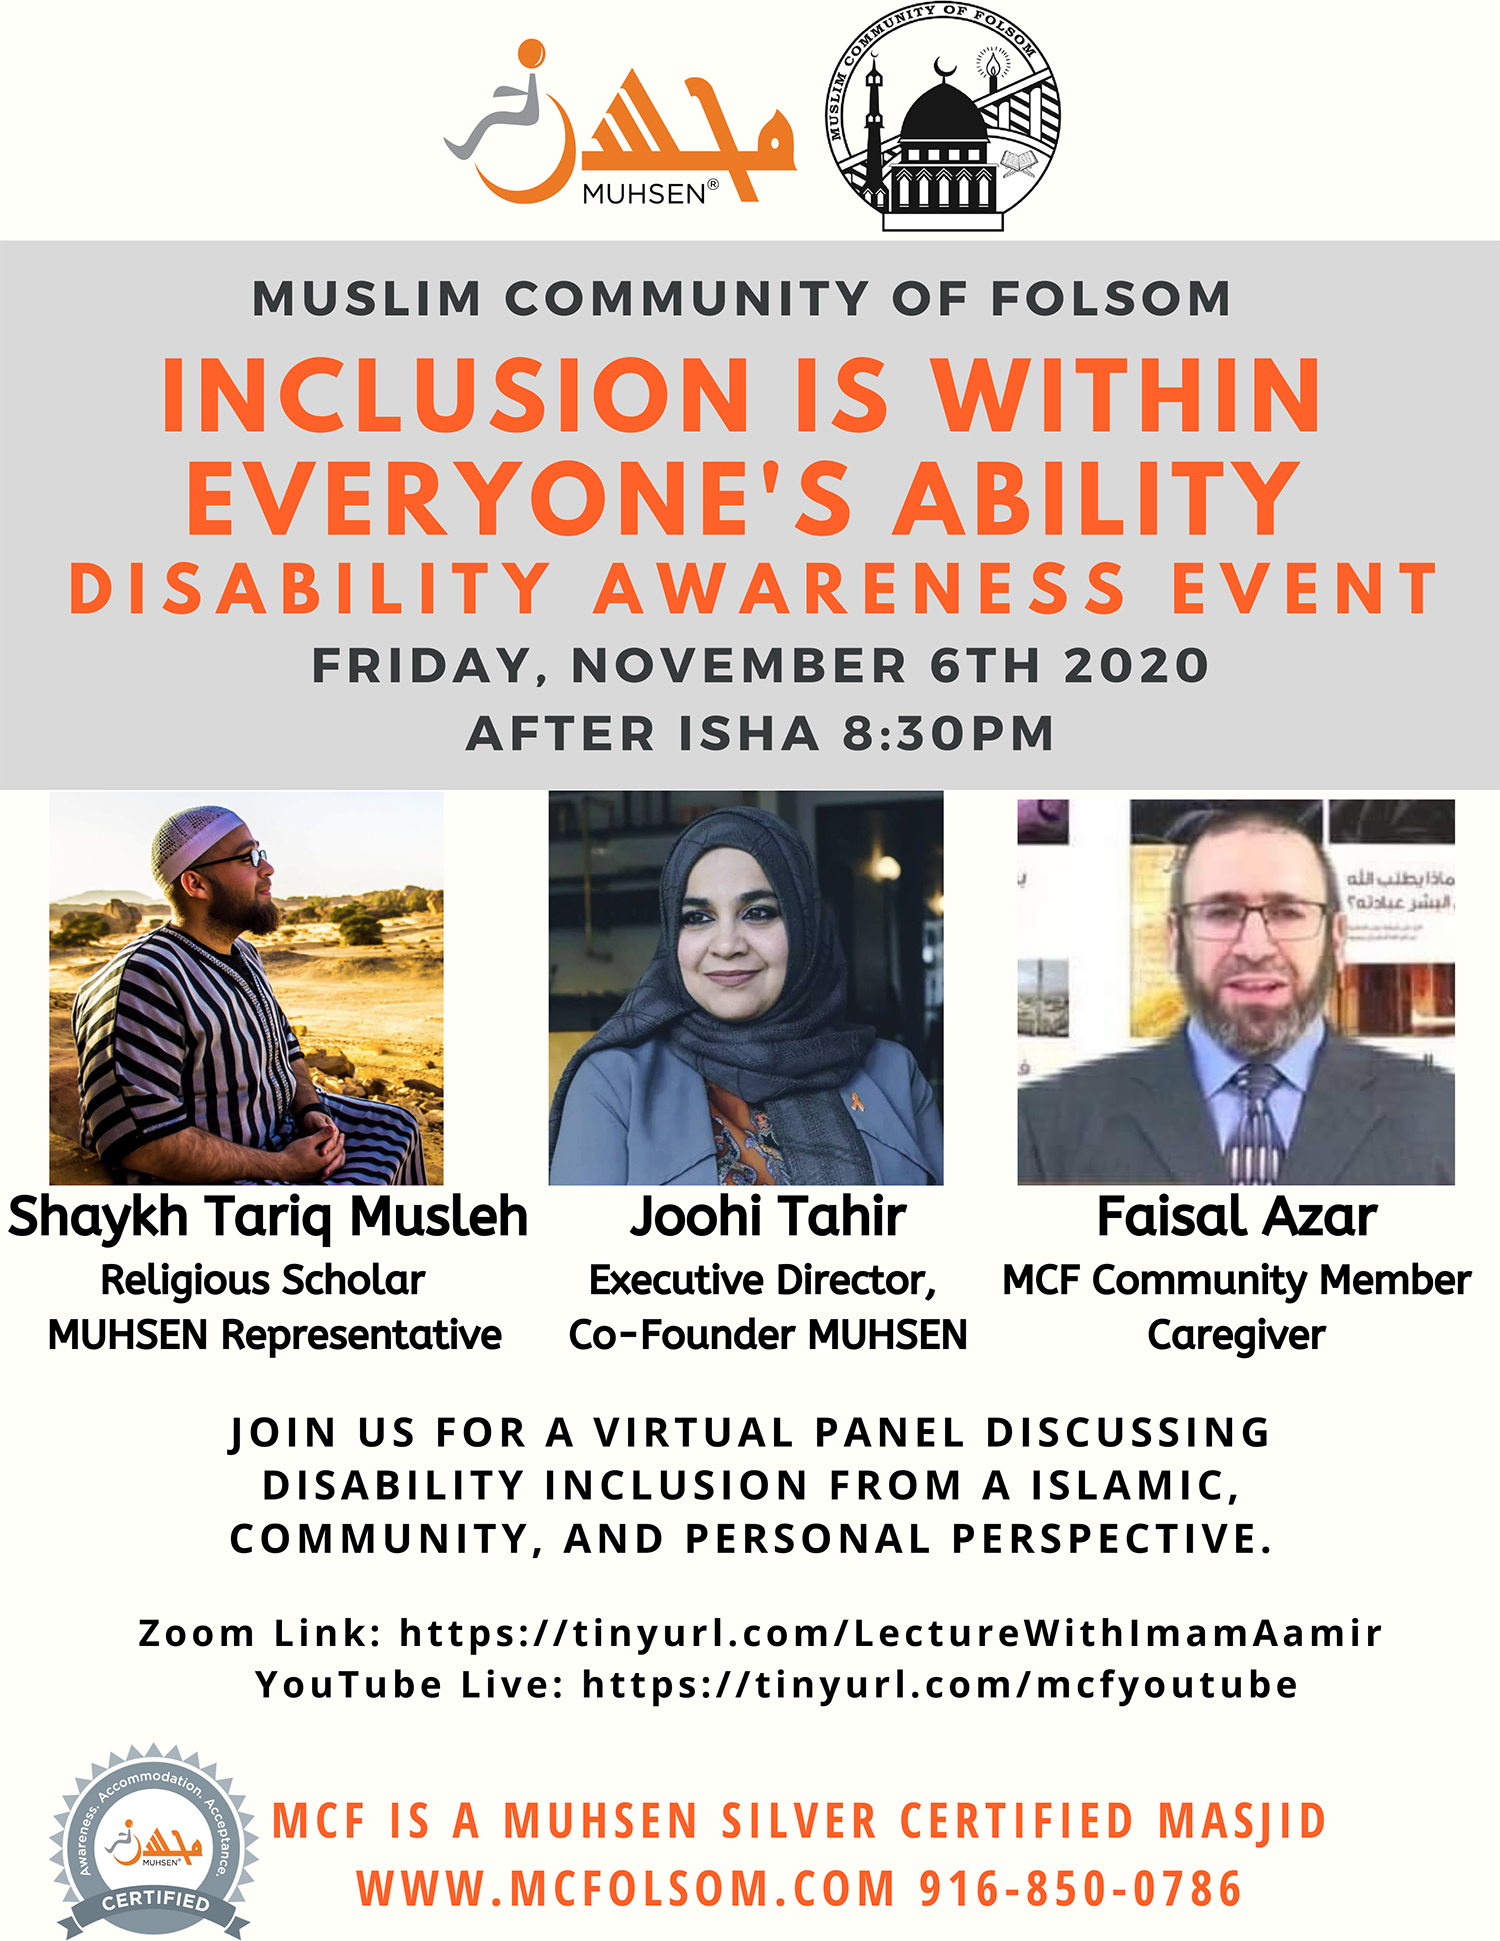 At the top is a muhsen logo and a muslim community of folsom logo. beneath is a gray tex box that reads Muslim community of folsom. inclusion is within everyone's ability. disability awareness event. friday november 6th 2020 after isha 8:30 pm. below to the left is a picture of shaykh tariq musleh, religious scholar and muhsen representative. to the right is a picture of joohi tahir, executive director and co founder of muhsen. to the right is a picture of faisal azar, mcf community member and caregiver. below is text that reads Join us for a virtual panel discussing disability inclusion from an islamic, community, and personal perspective